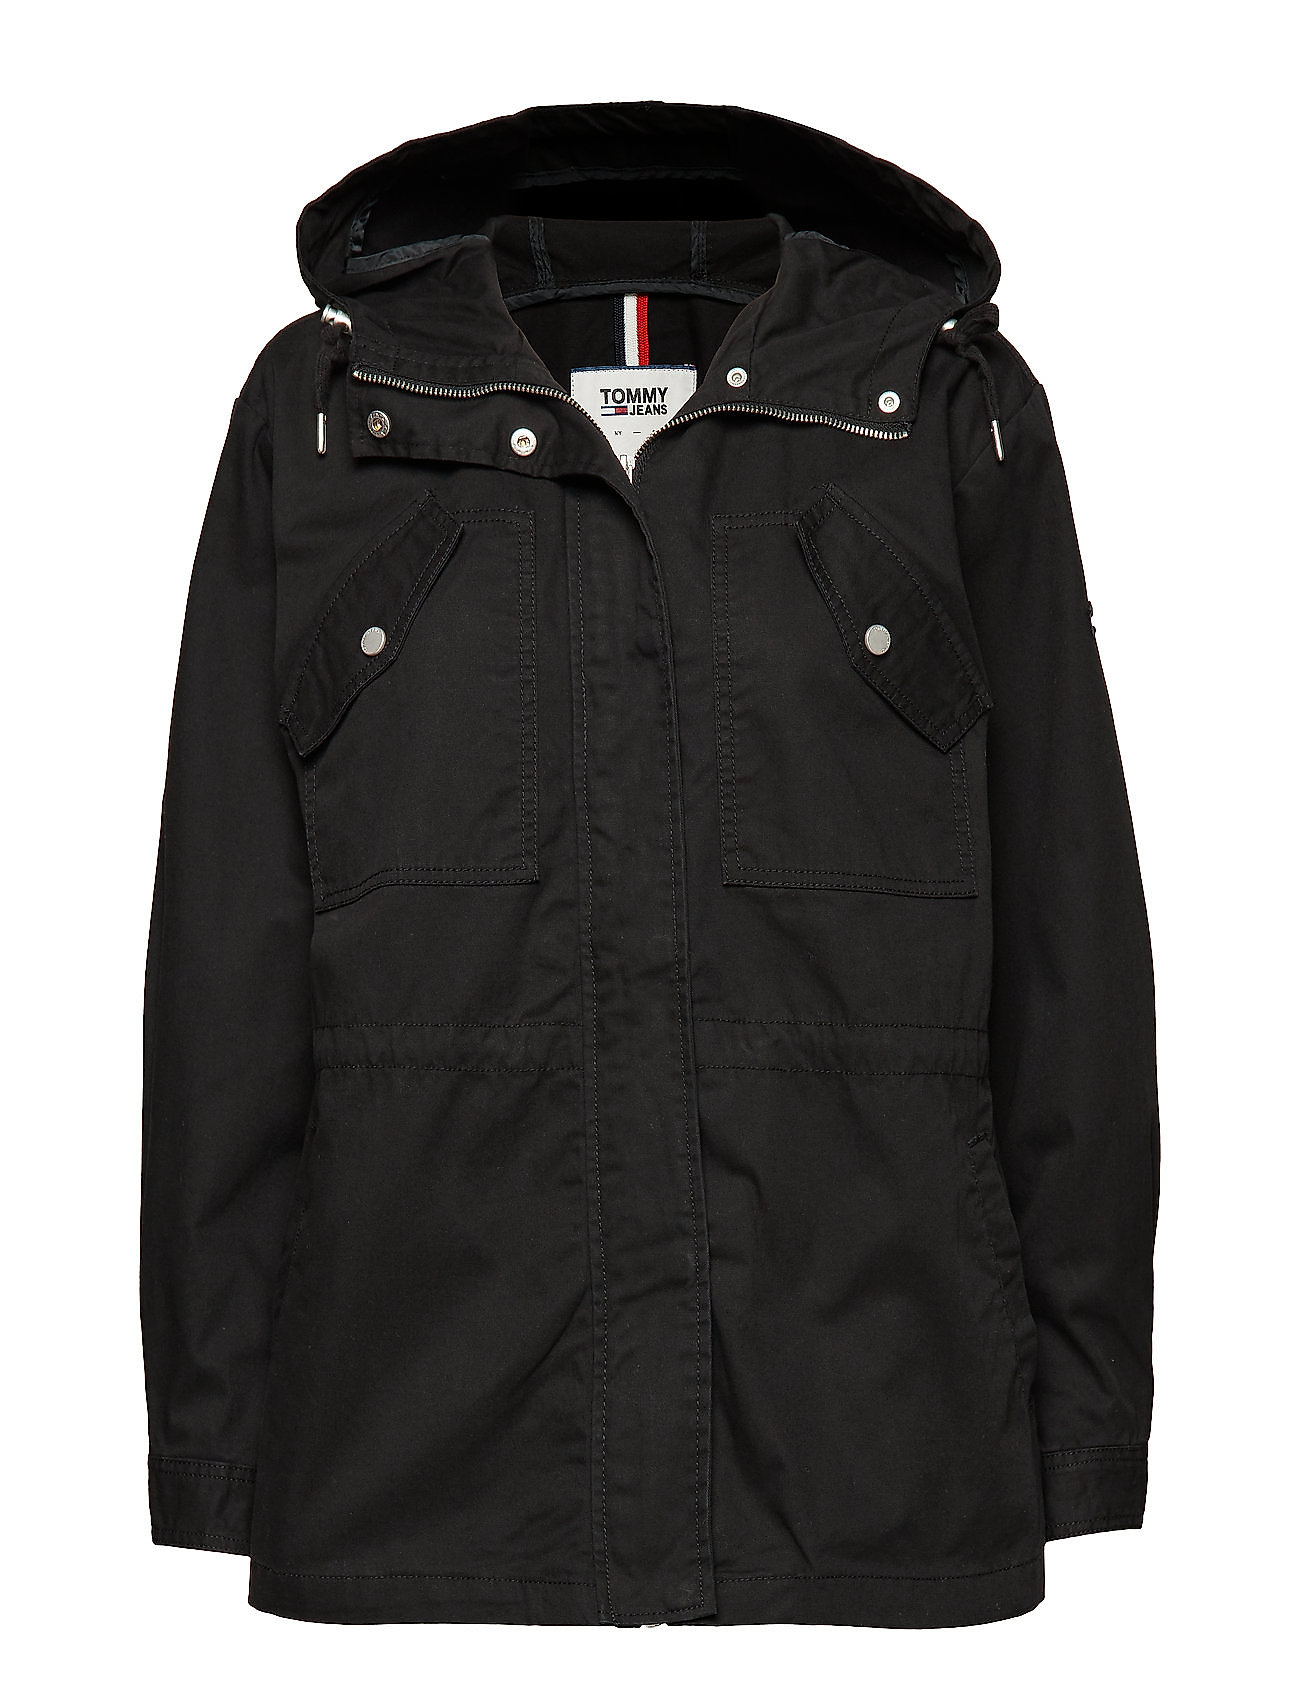 Tommy Jeans TJW ESSENTIAL COTTON - TOMMY BLACK